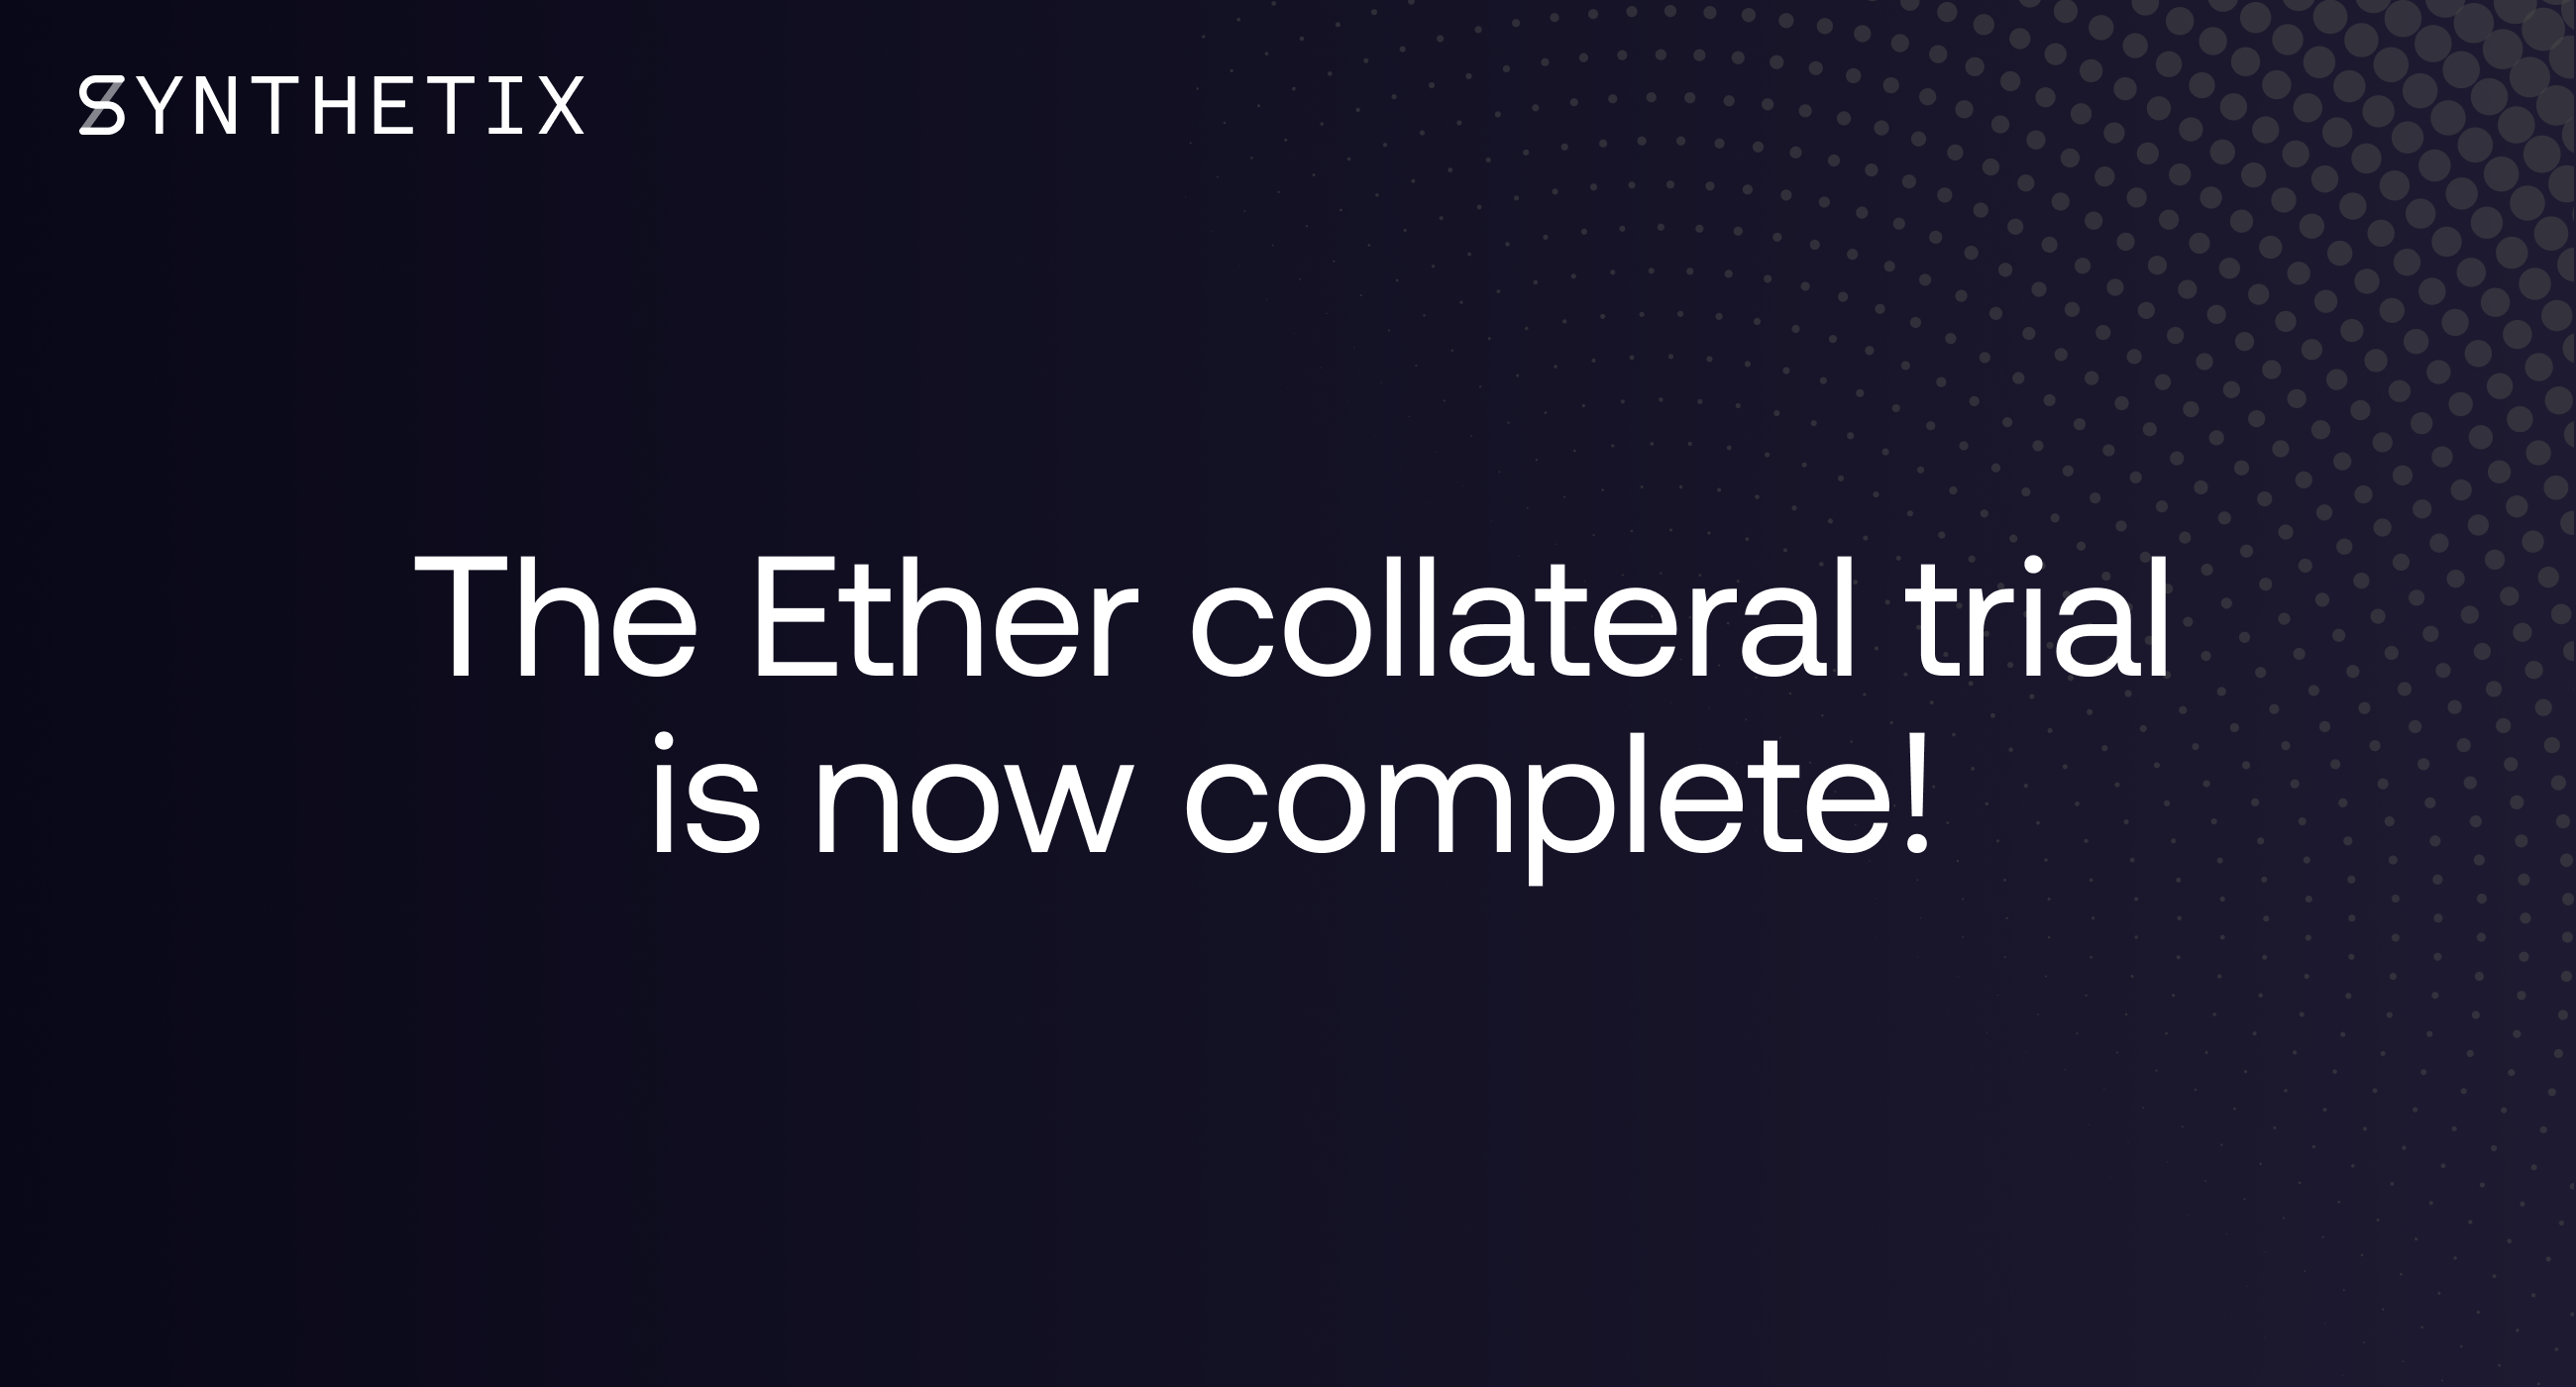 The Ether collateral trial is now complete!